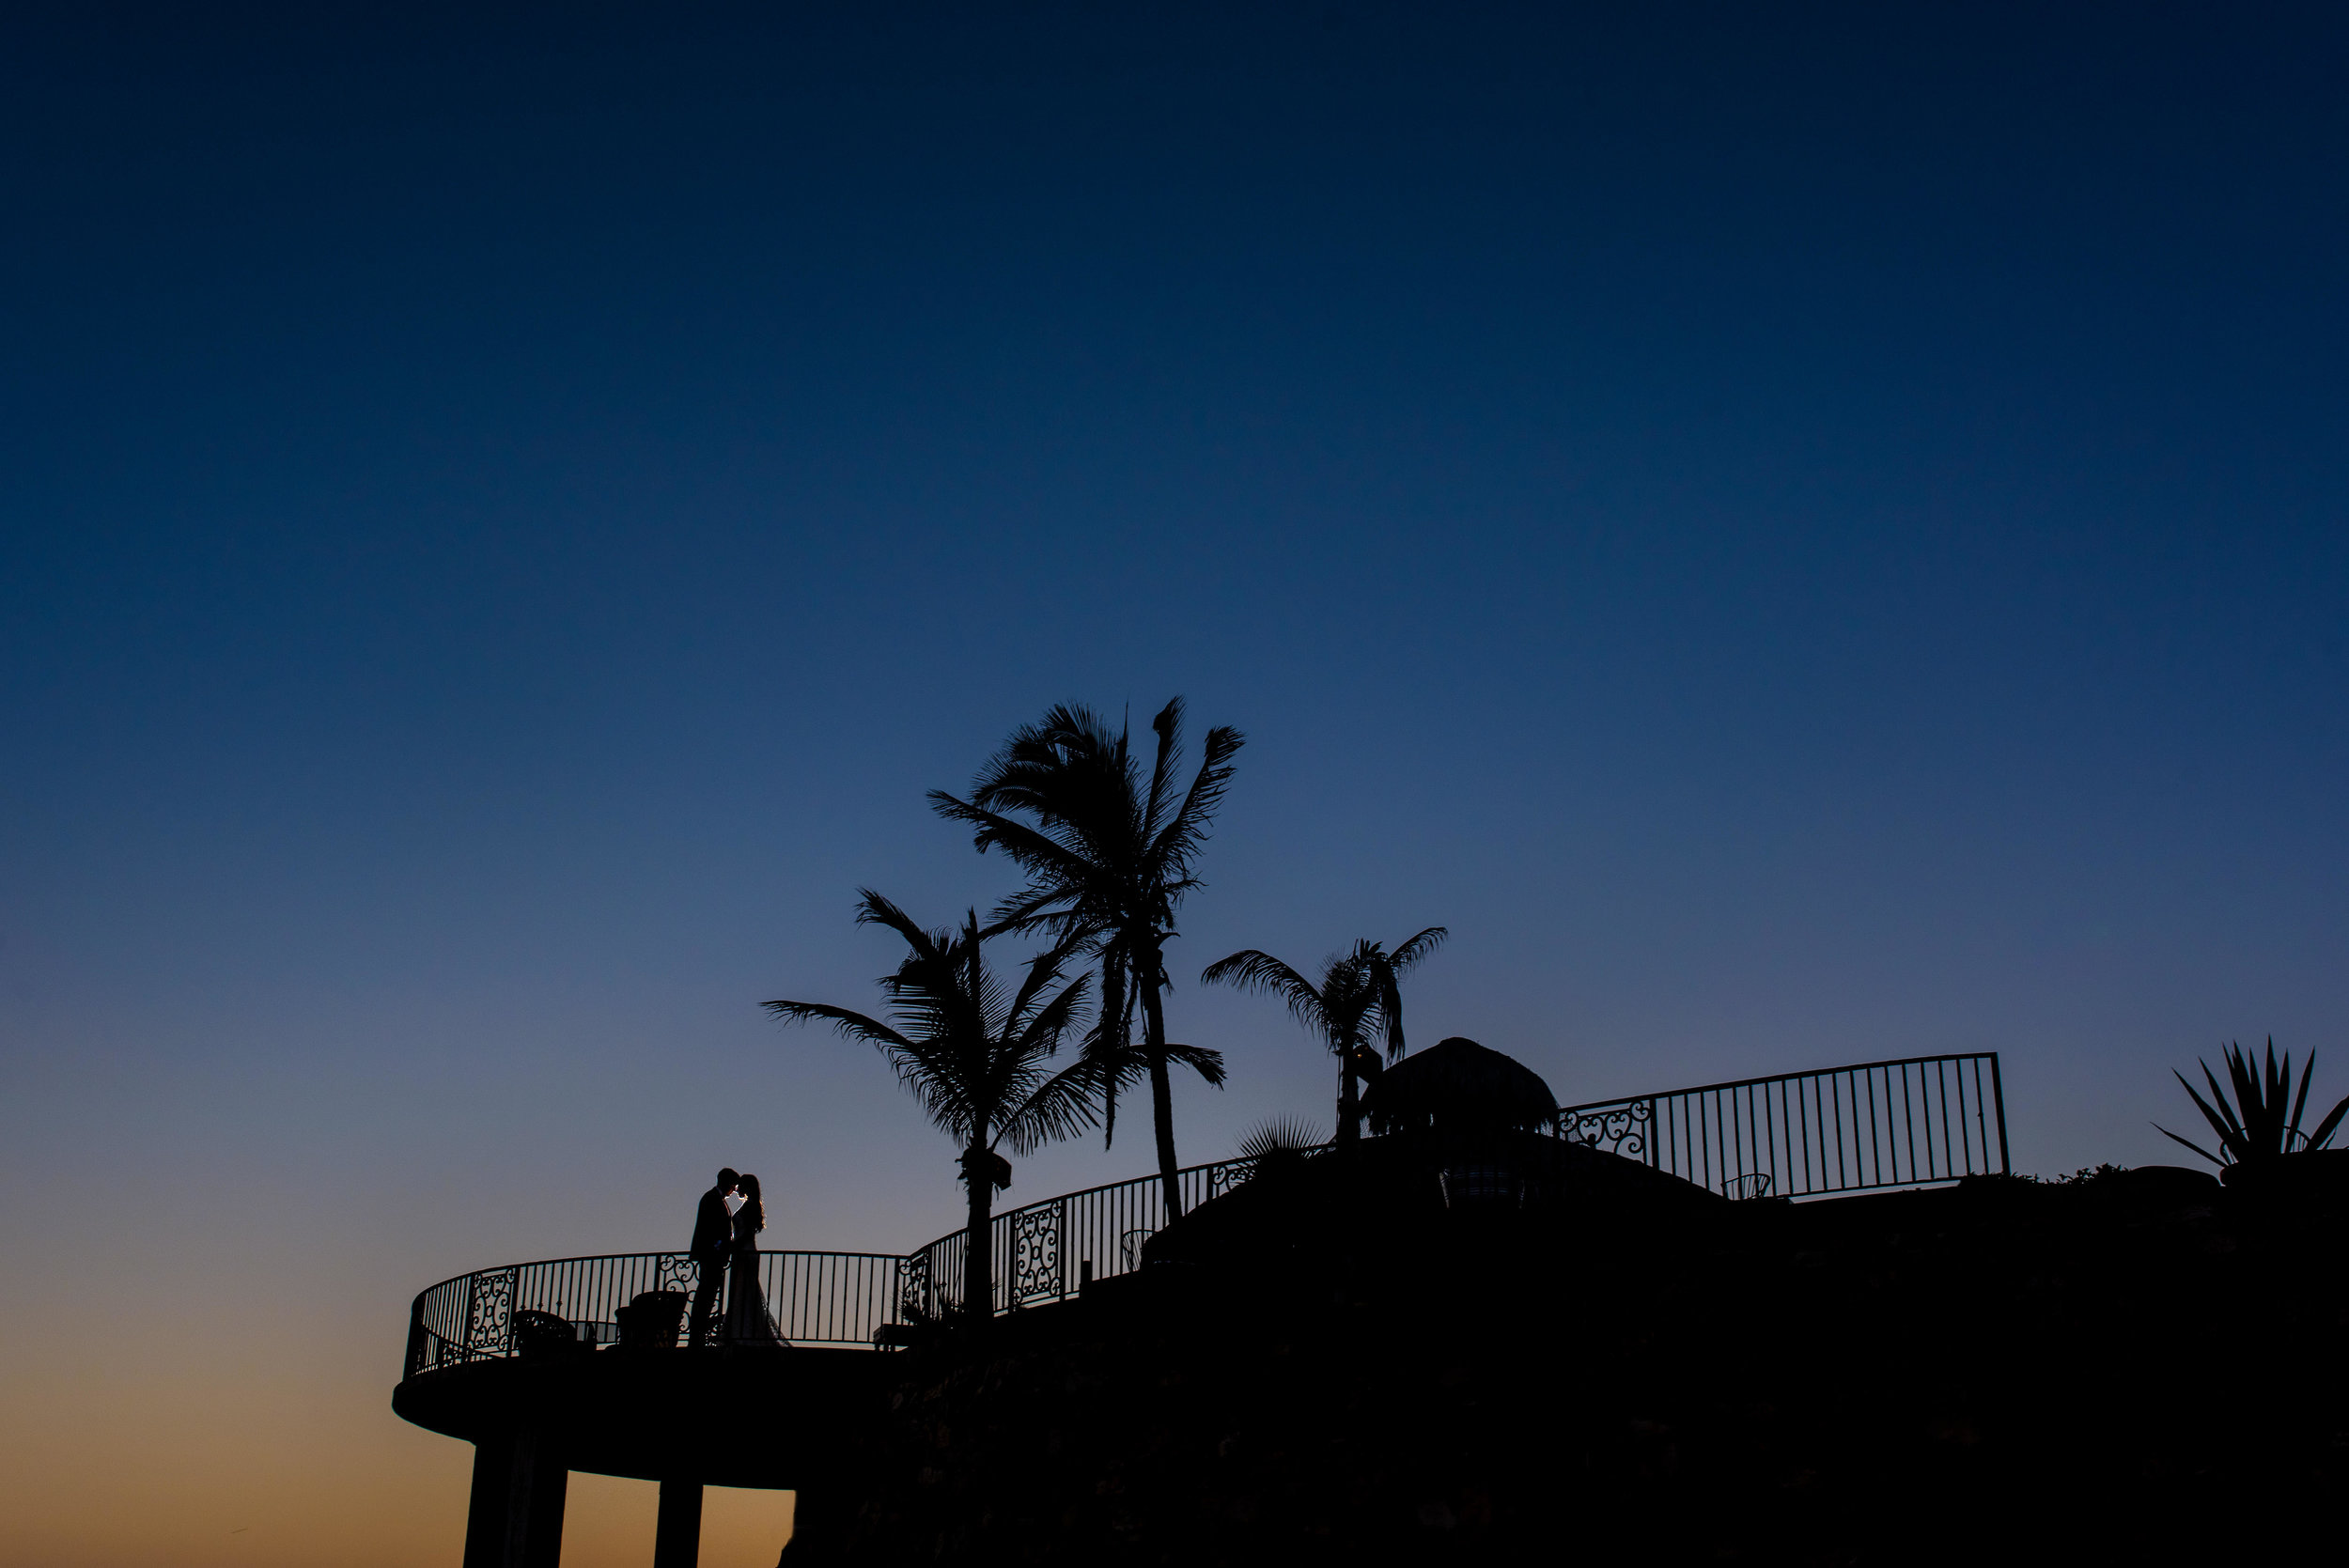 Bride and Groom under the palm trees at Todos Santos during thier sunset photo session with GVphotographer on their wedding day